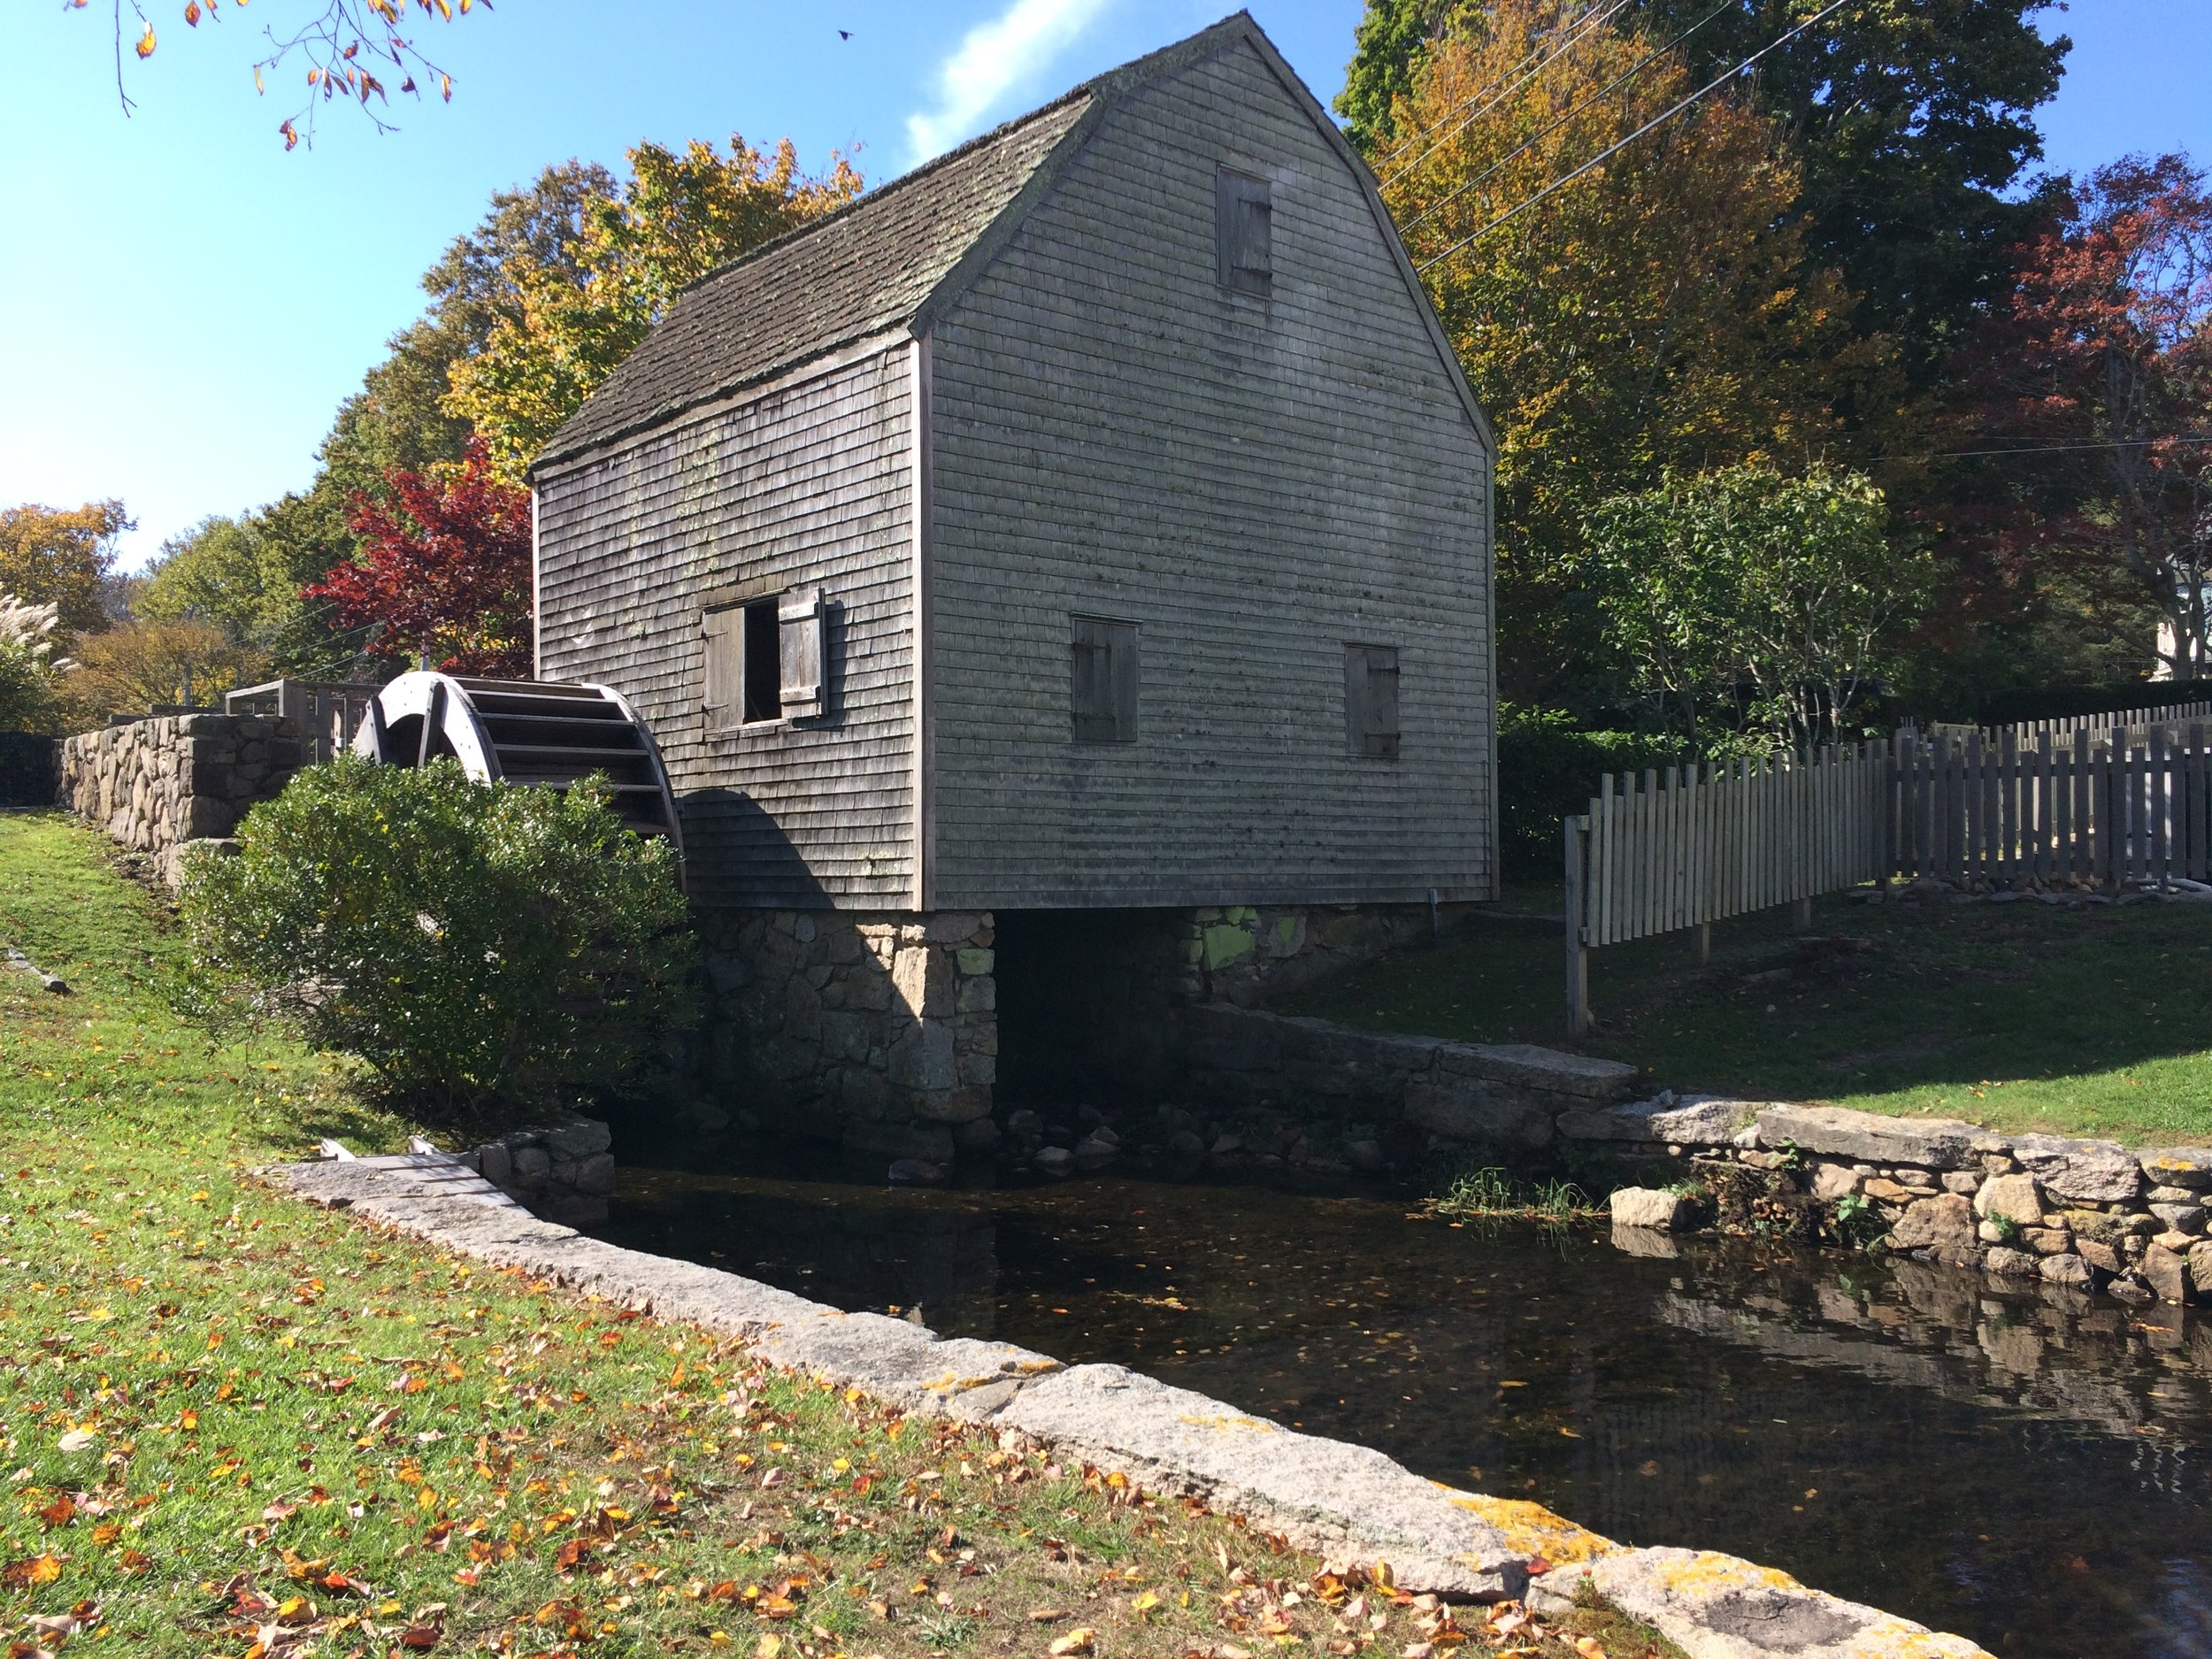 Dexter Grist Mill in Sandwich